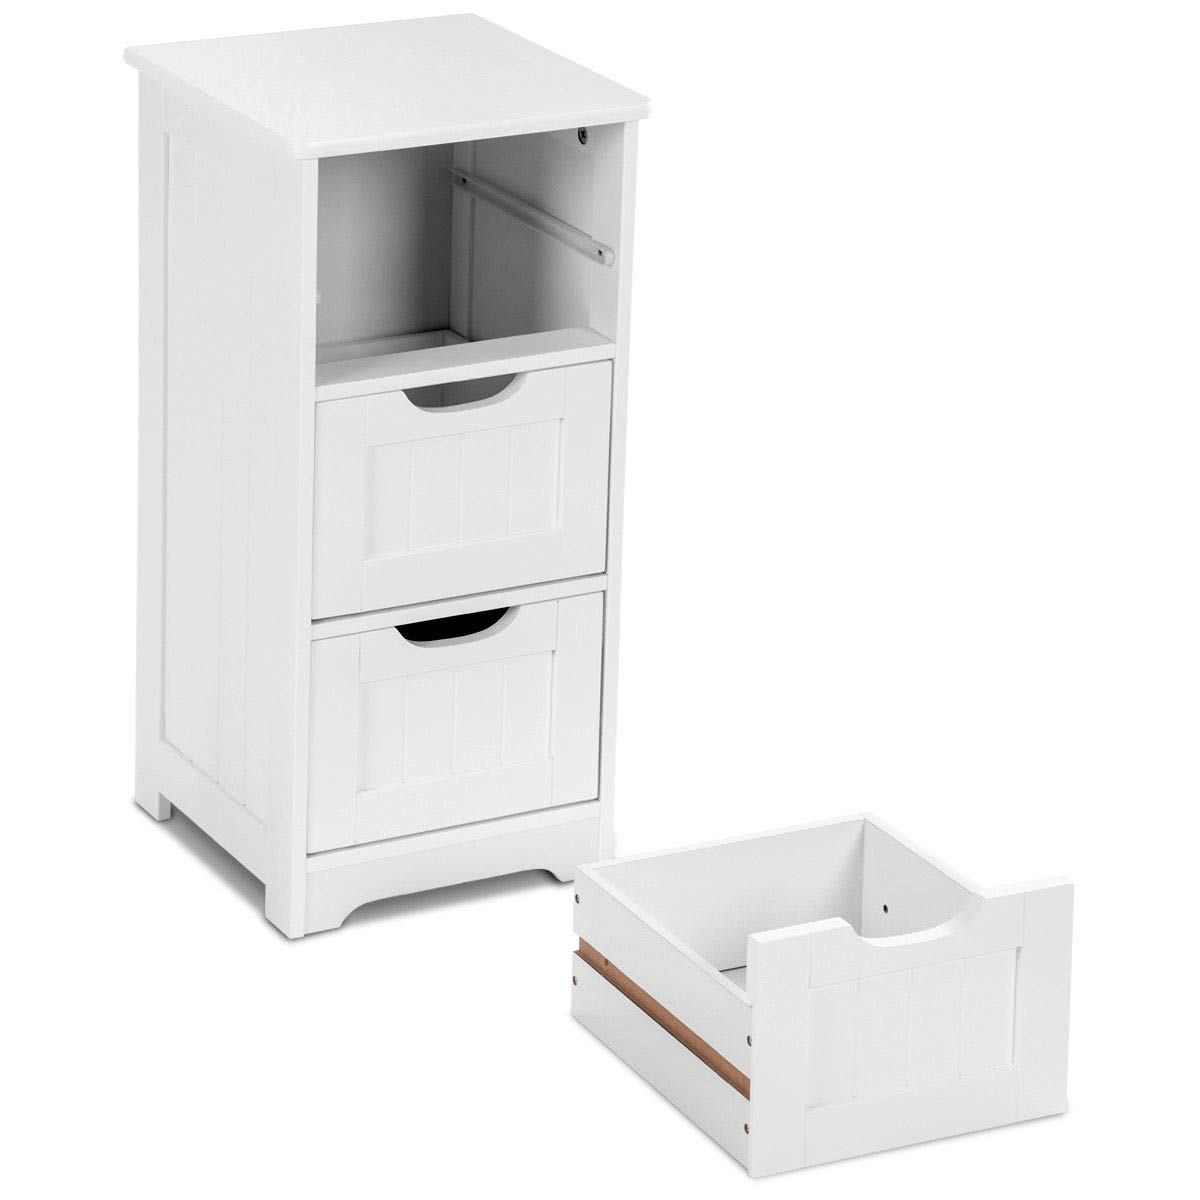 Tangkula Floor Cabinet with 3 Drawers Wooden Storage Cabinet for Home Office Living Room Bathroom Side Table Sturdy Modern Drawer Cabinet Organizer Bedroom Night Stand, White(3 Drawers) by TANGKULA (Image #8)